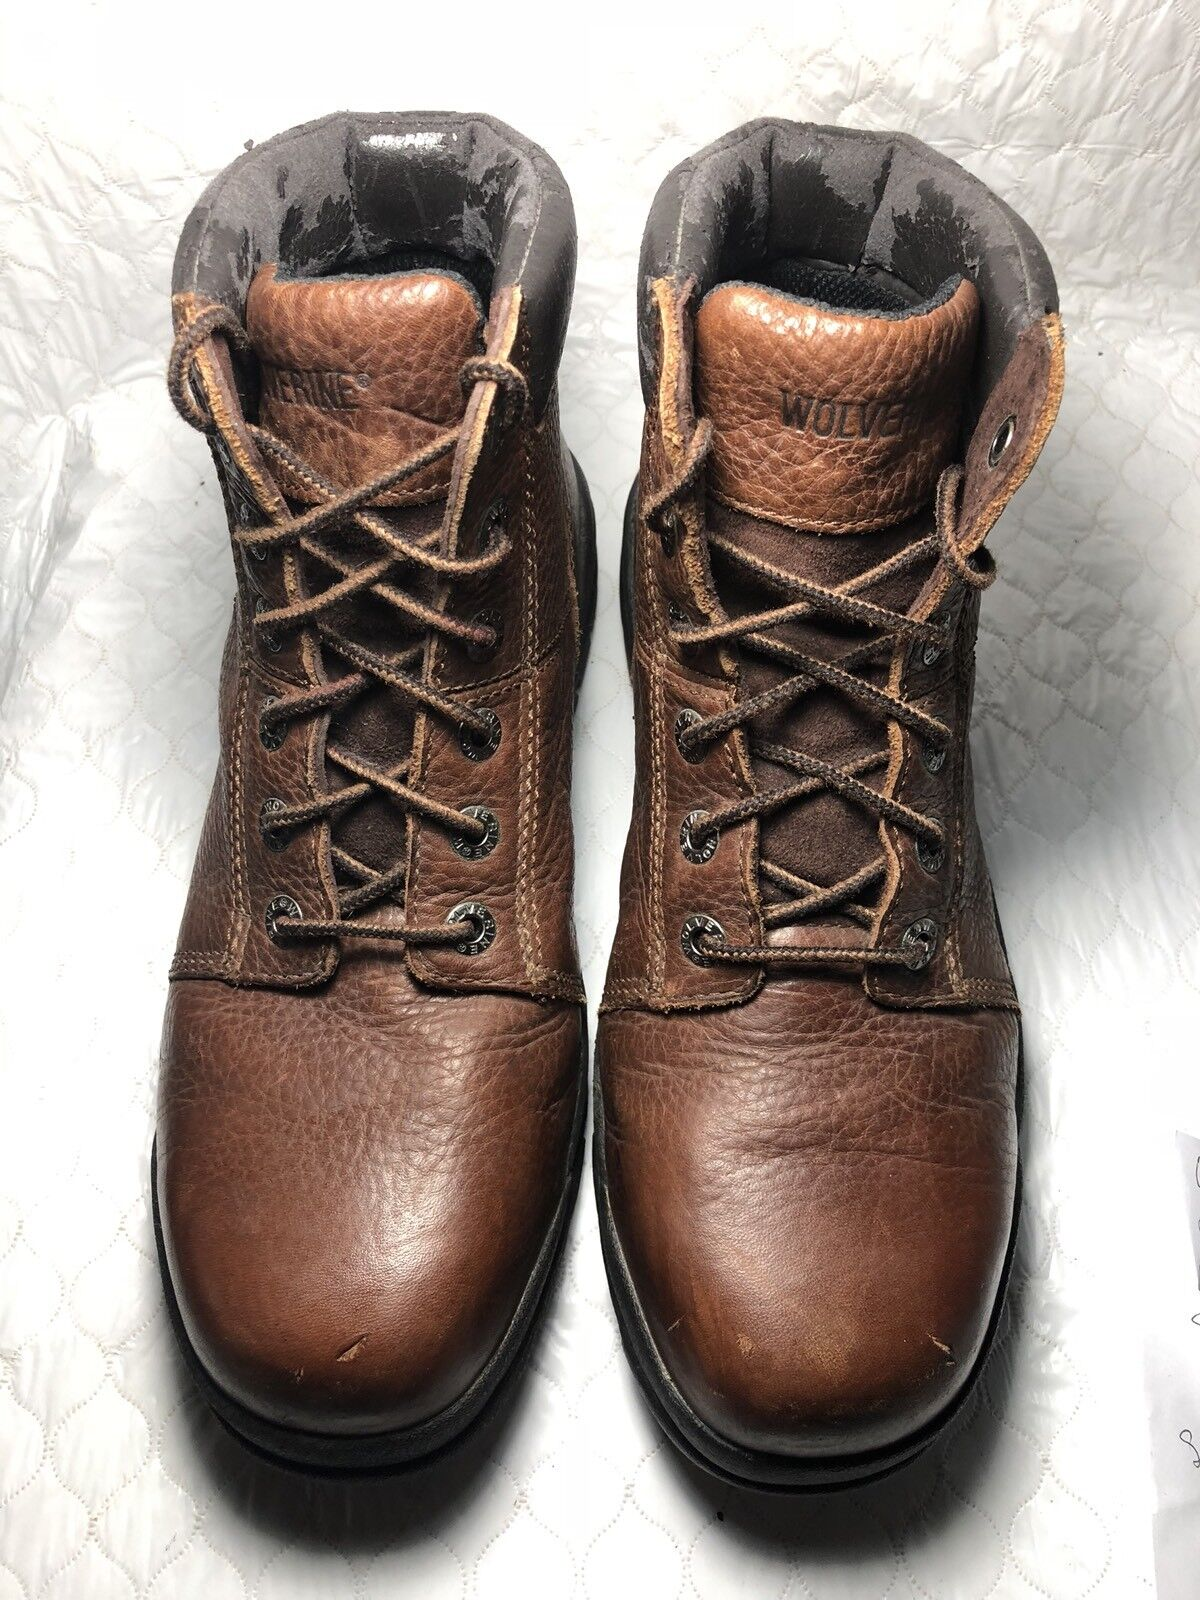 Wolverine Men's Brown Leather Steel Toe Hiker Work Boots Size-9 M